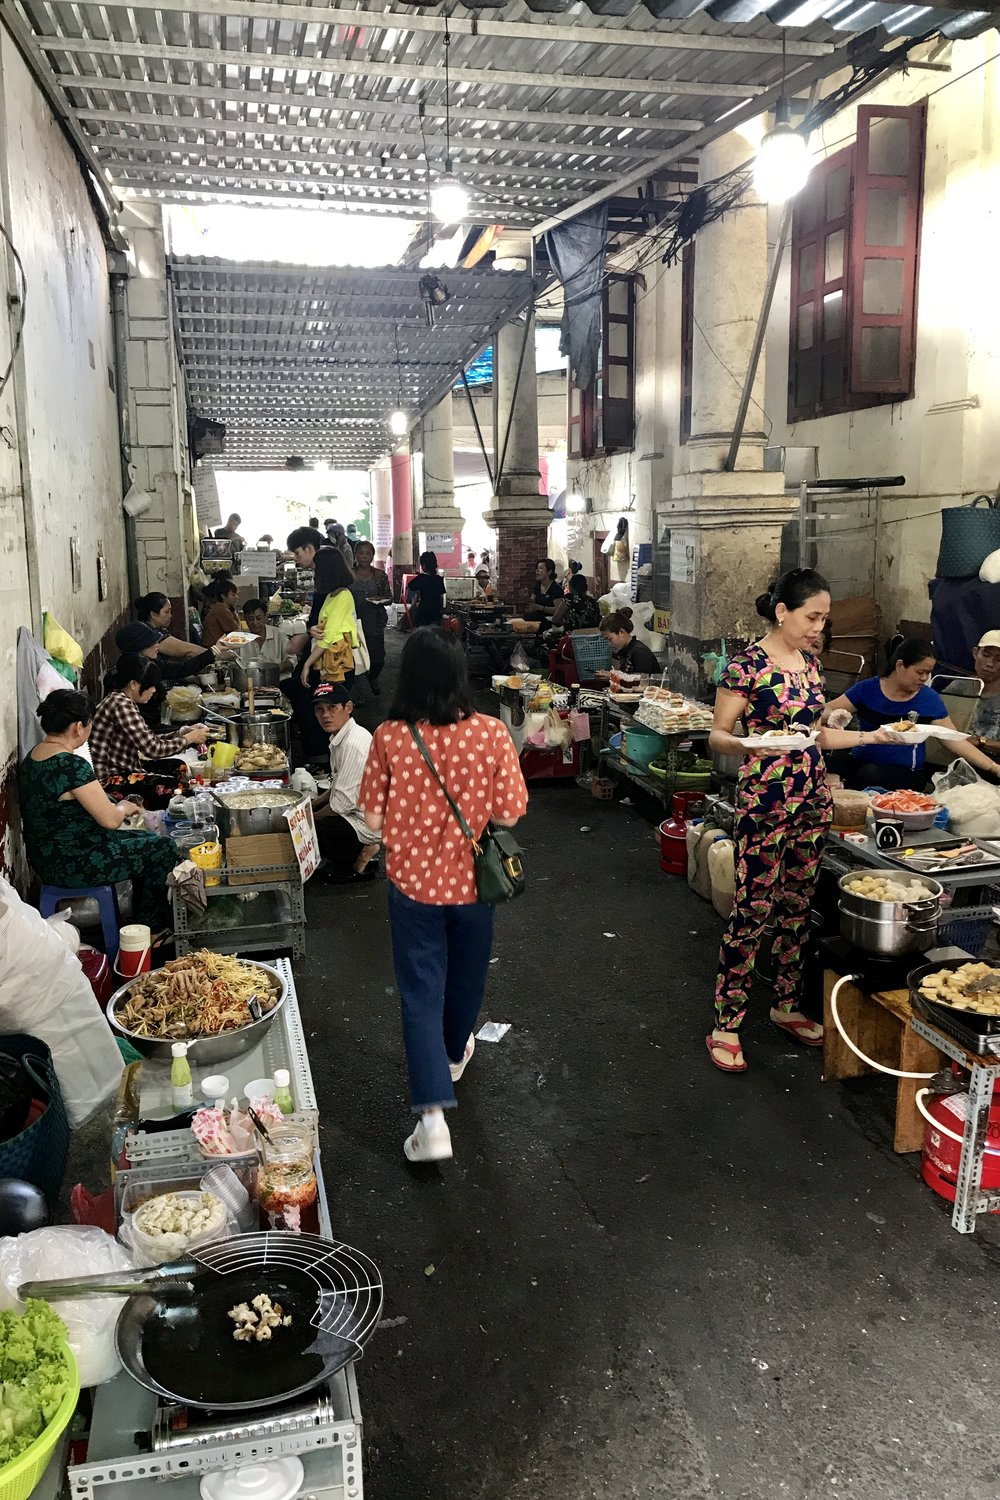 Serious street food alley